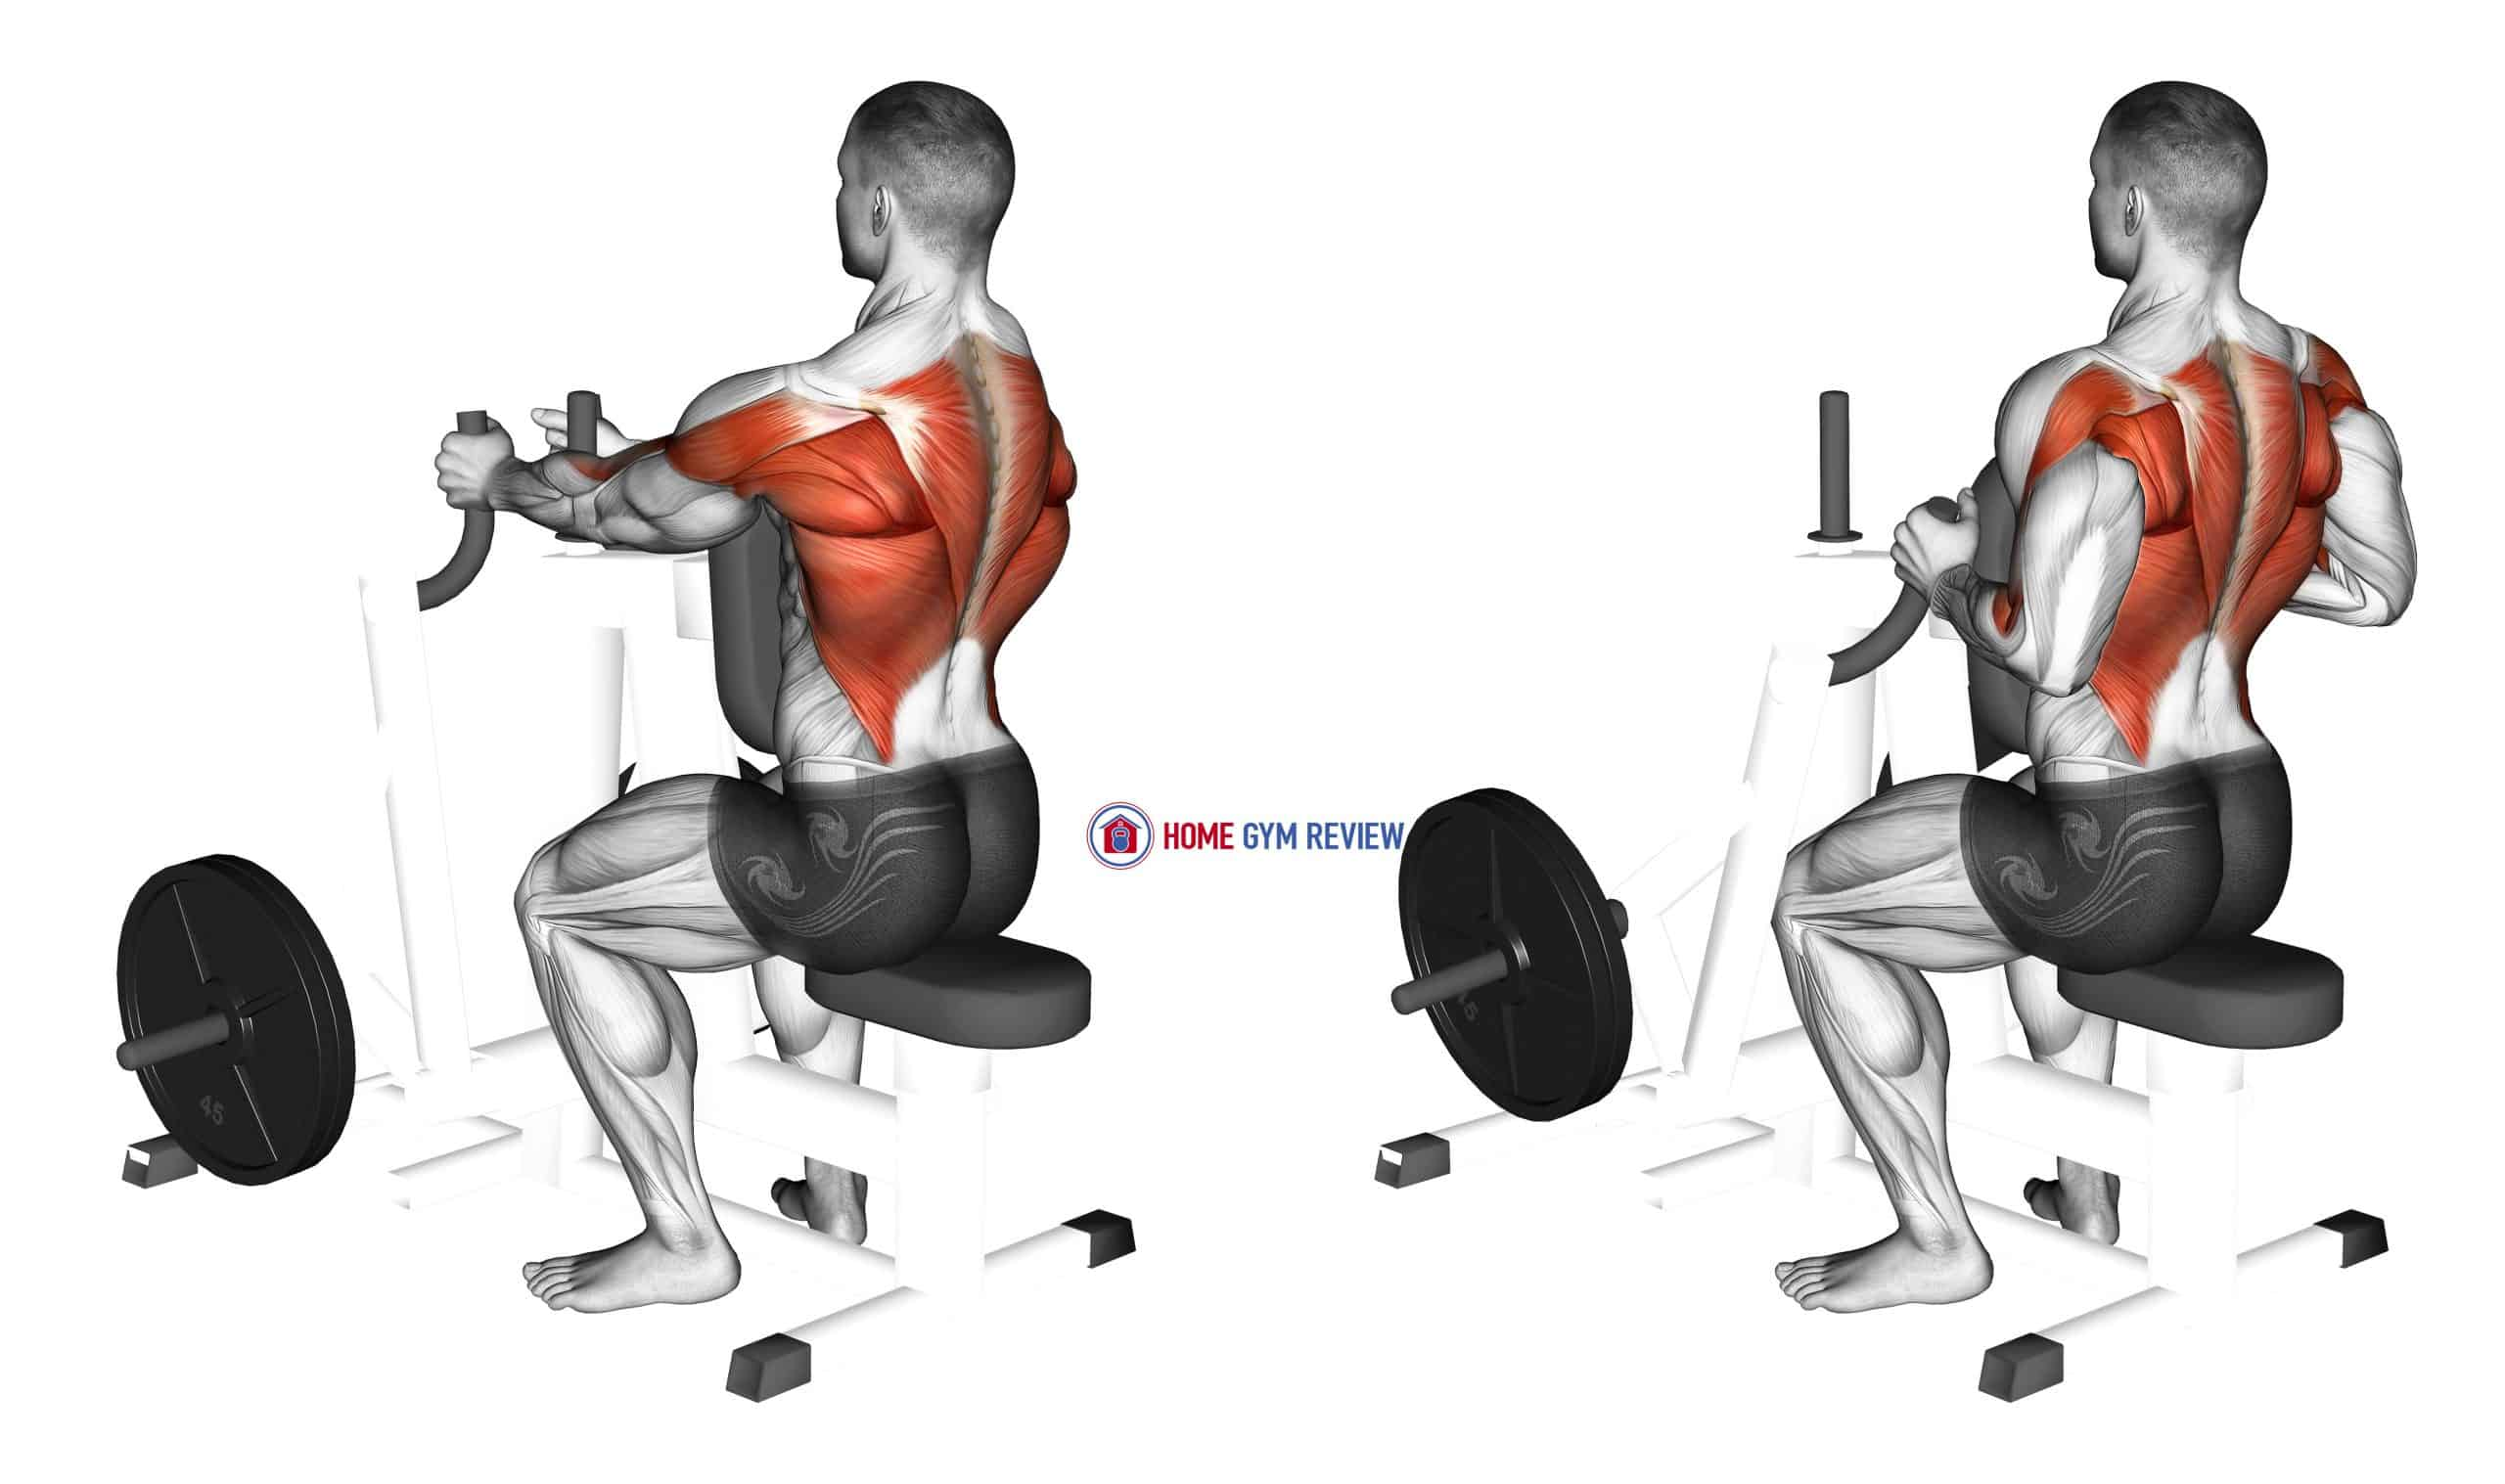 Lever Narrow Grip Seated Row (plate loaded)